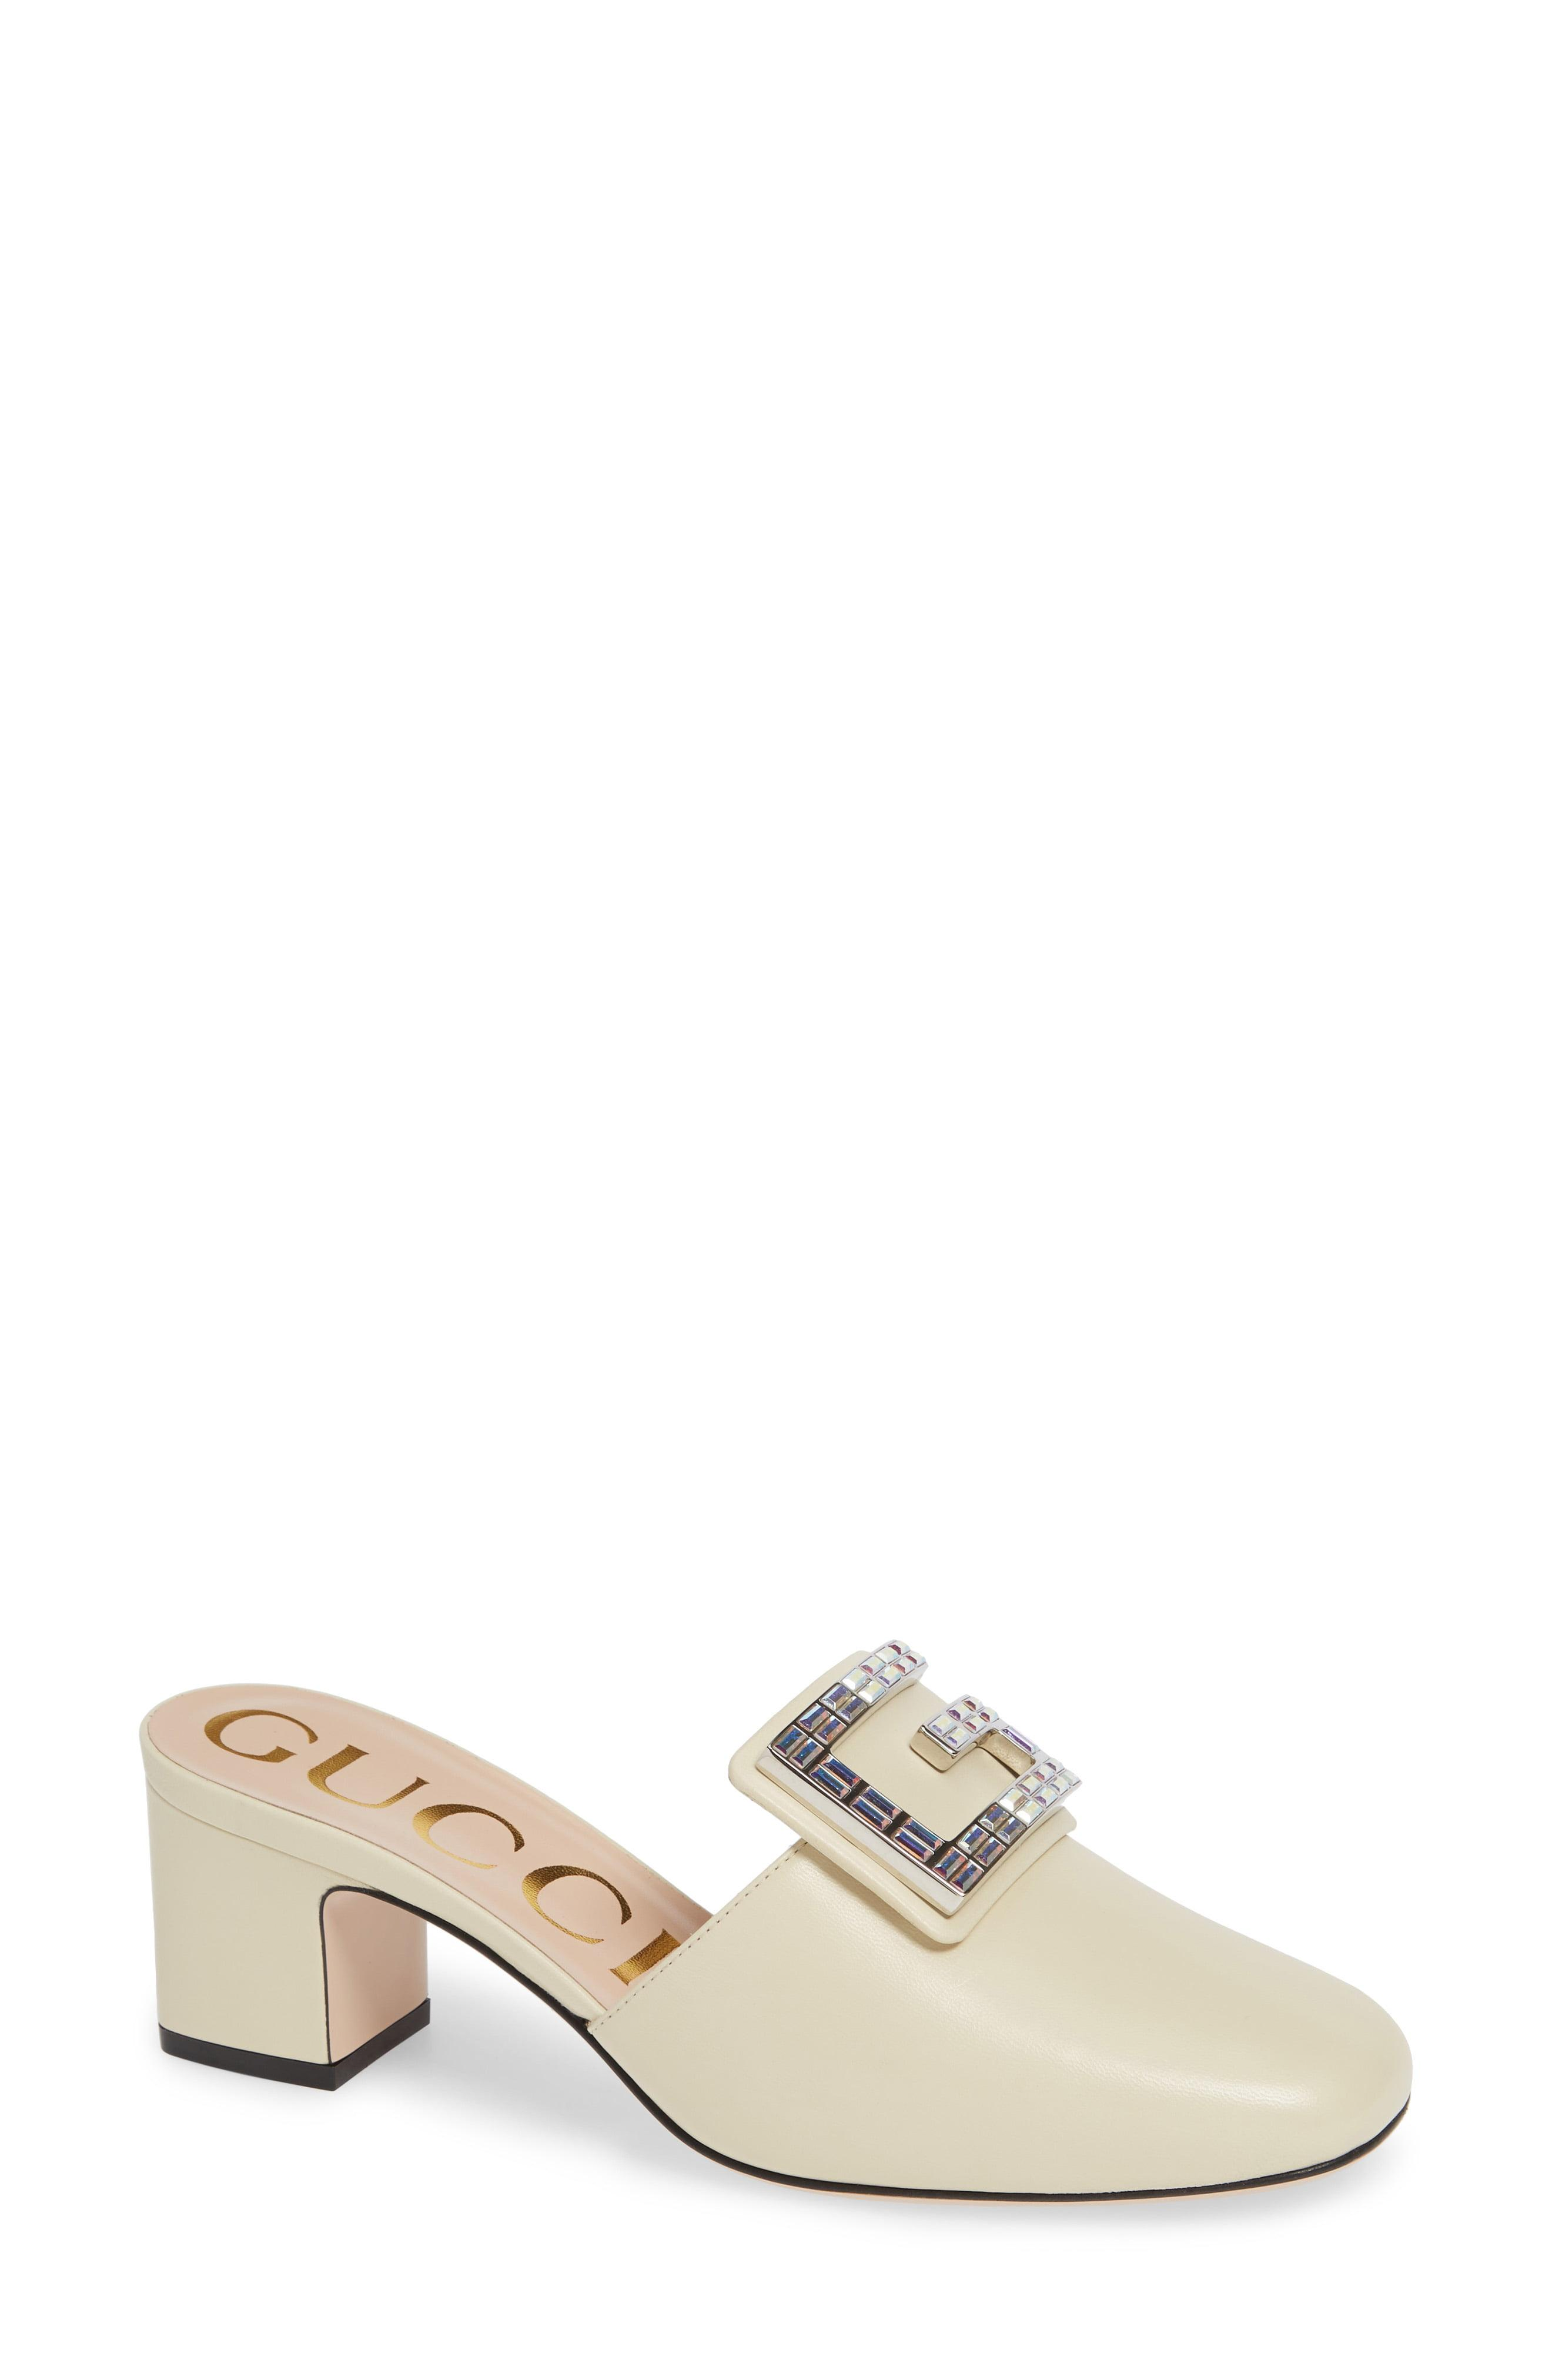 5699c279f15 Lyst - Gucci Madelyn Crystal G Mule in White